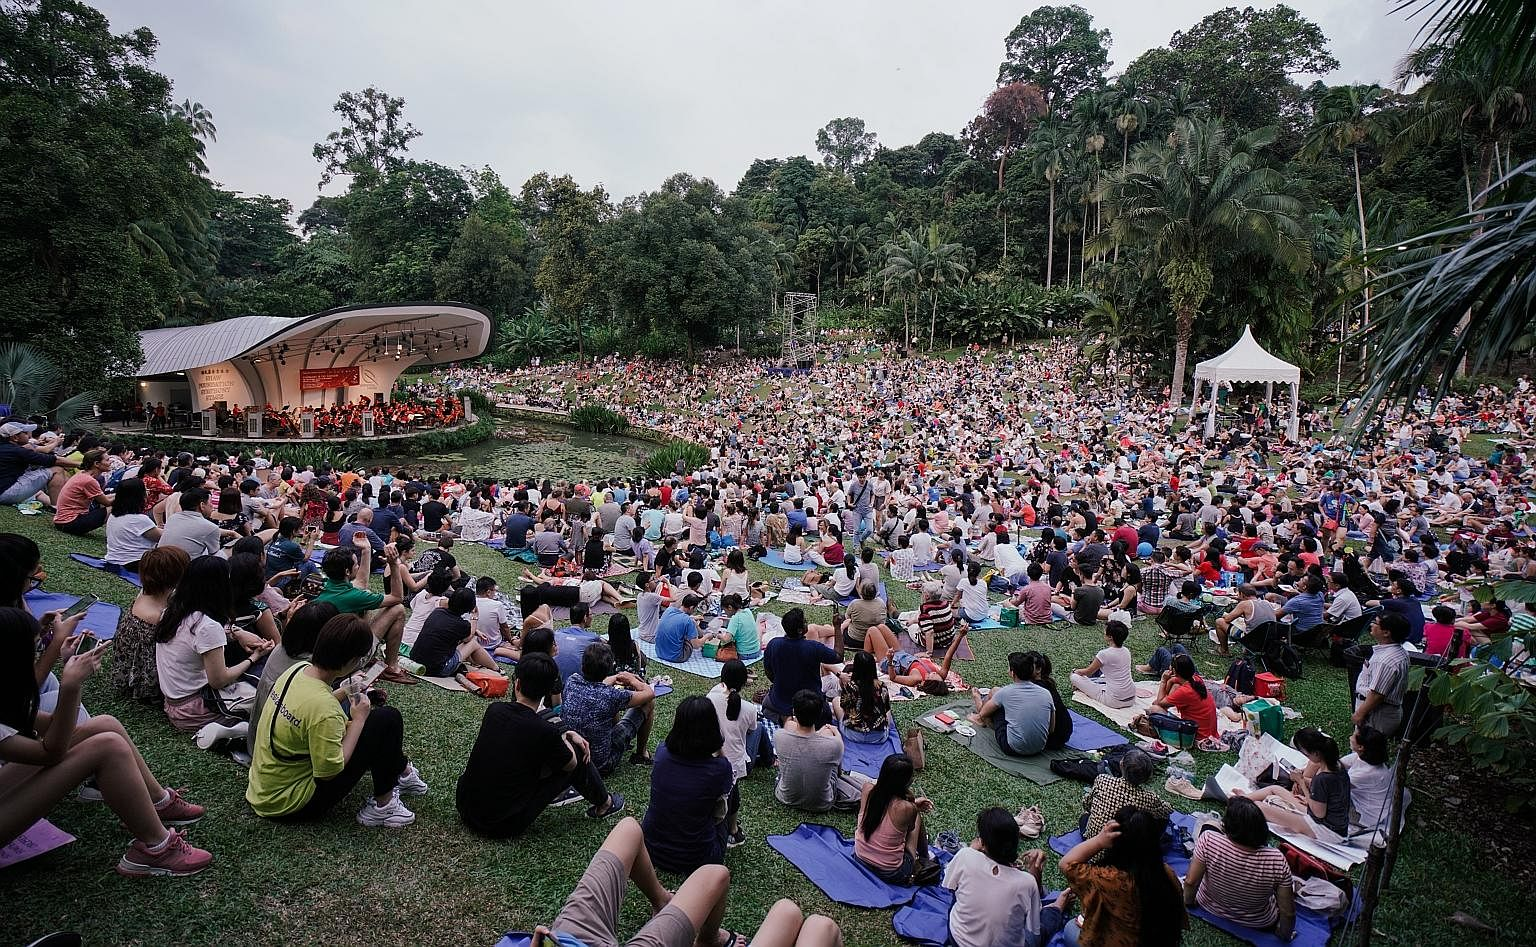 Music filled the air at the Botanic Gardens yesterday as the Singapore Symphony Orchestra (SSO) played to thousands who attended The Straits Times Concert in the Gardens. The SSO, led by associate conductor Joshua Tan, performed a selection of family